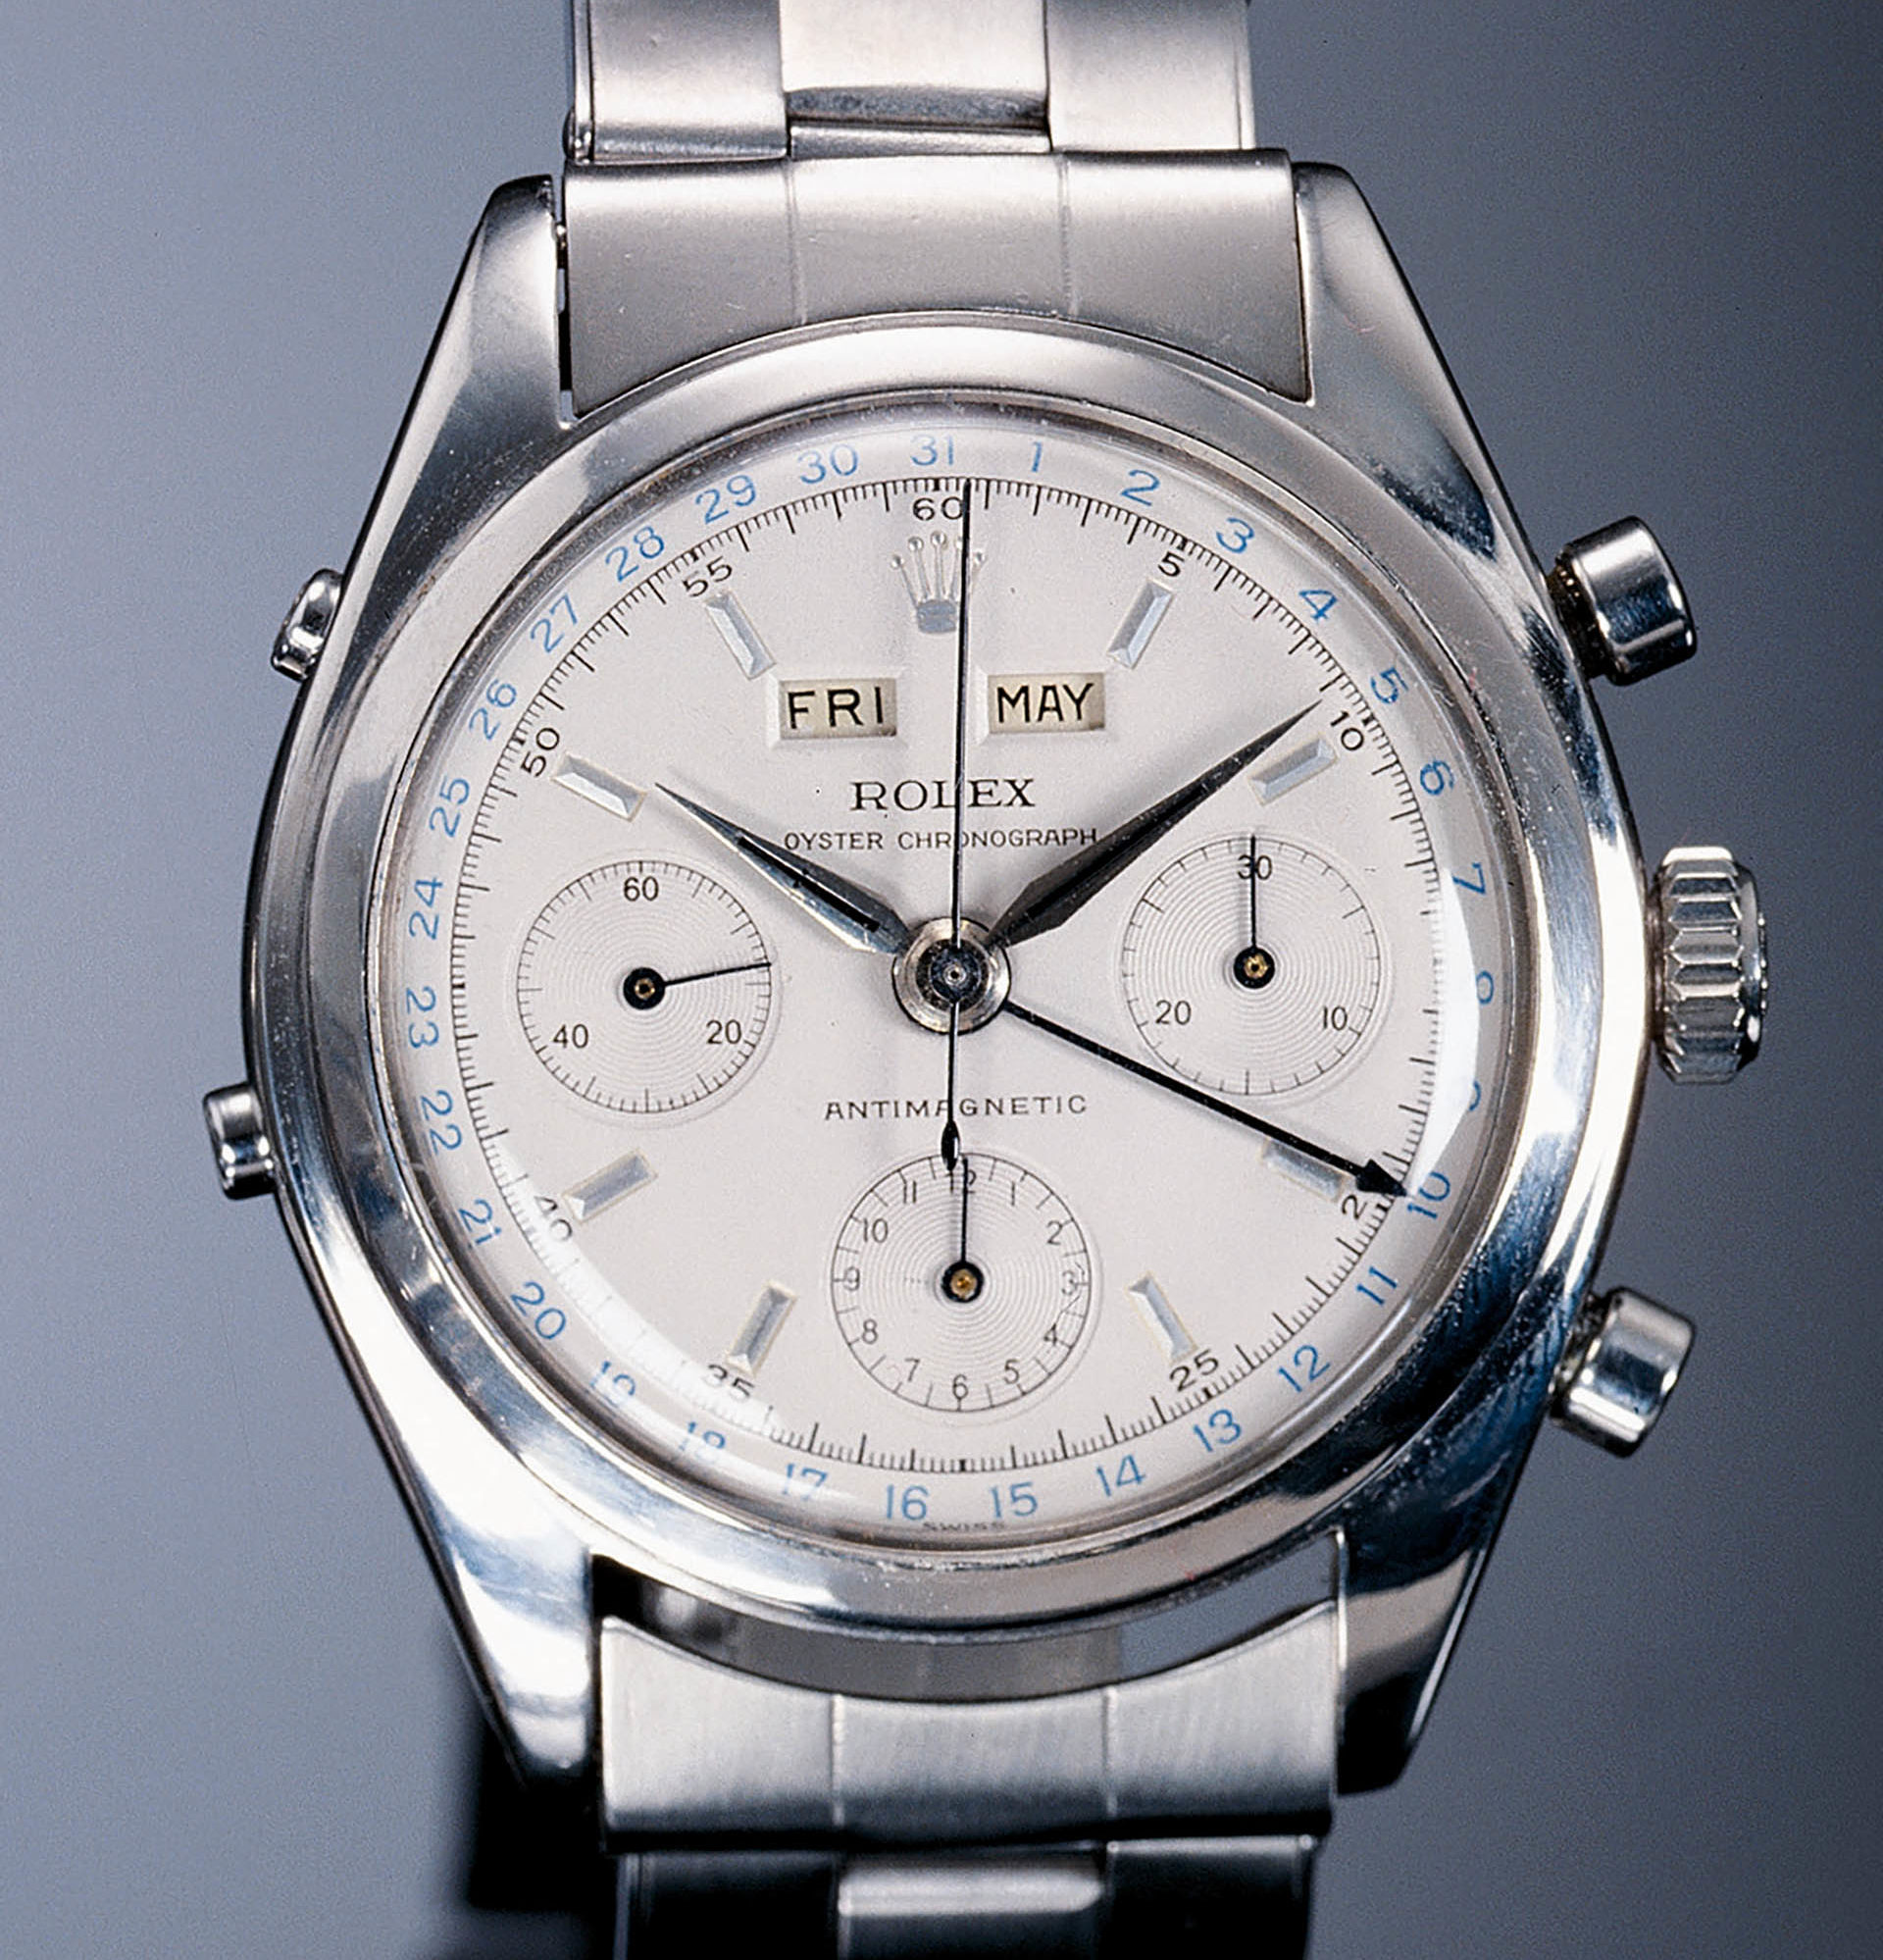 Rolex Jean-Claude Killy Ski